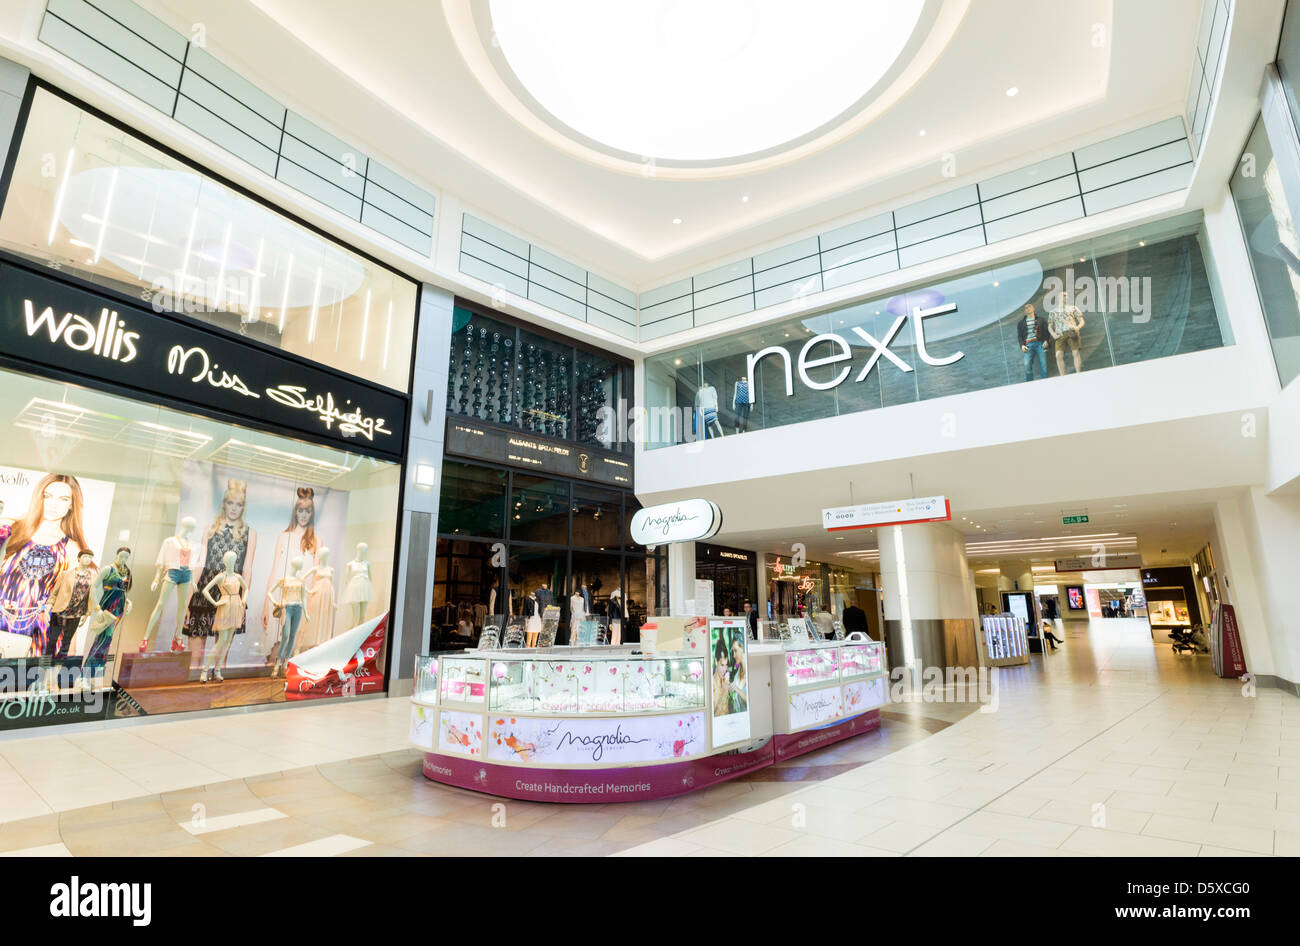 Eldon Square shopping centre in Newcastle Upon Tyne - Stock Image